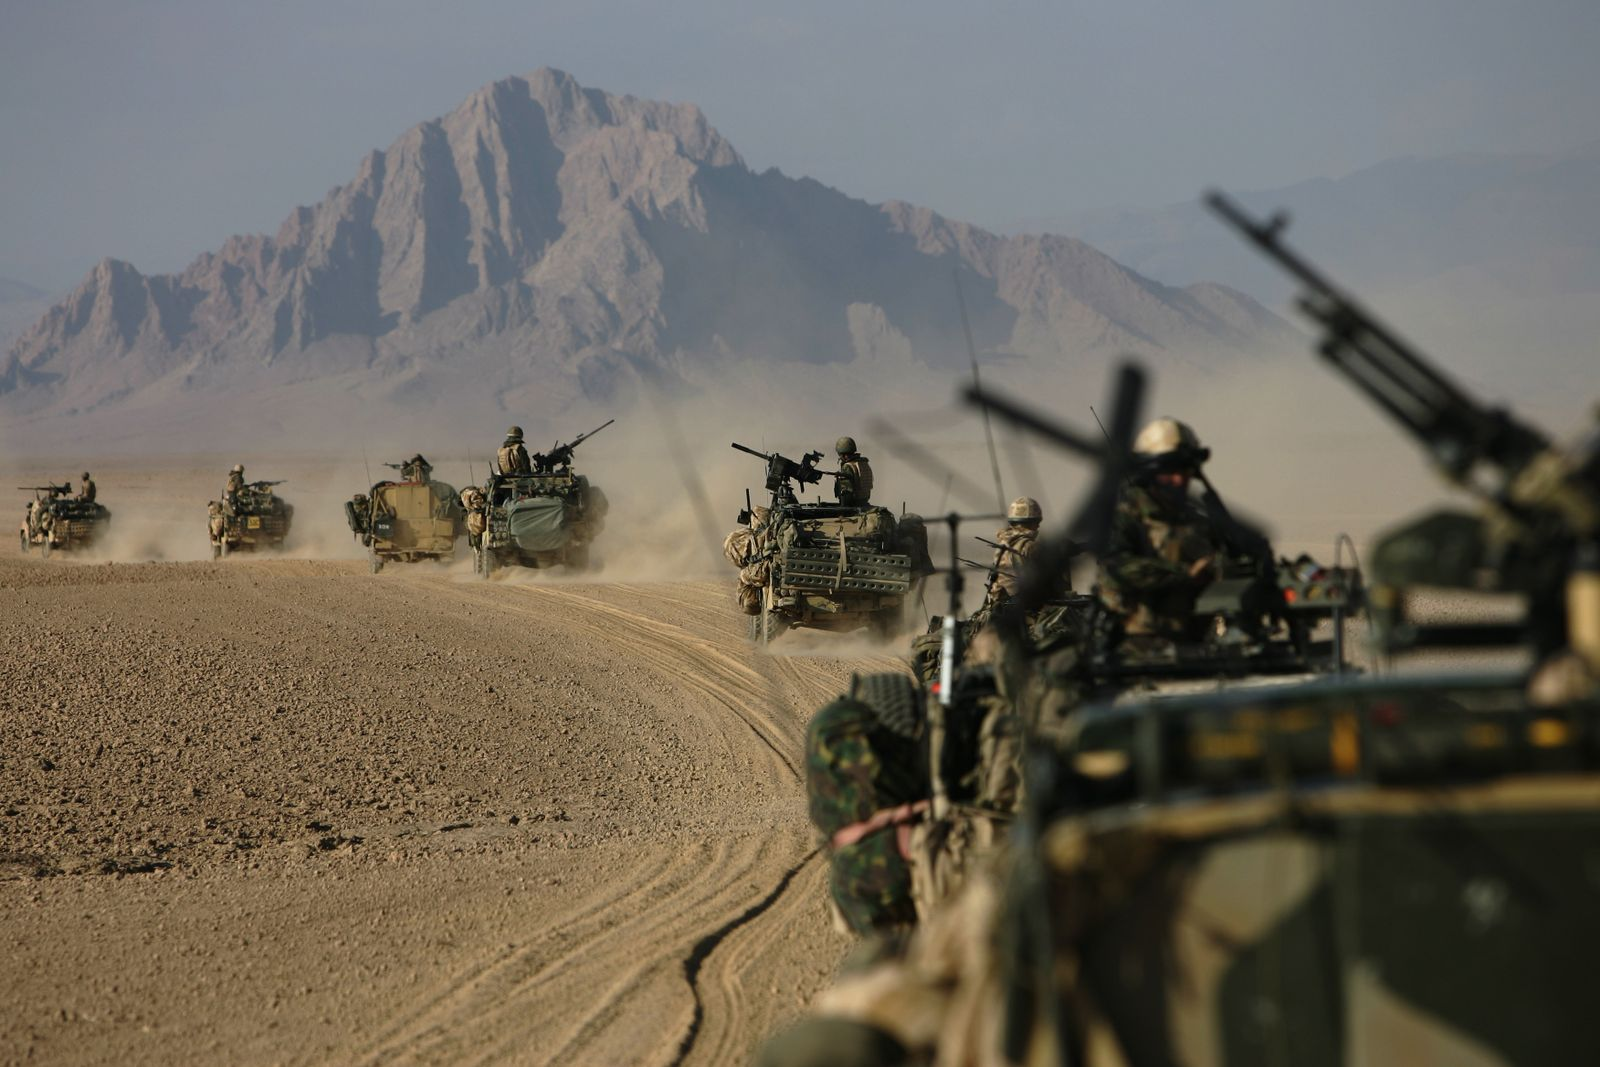 Afghanistan Desert Patrol re-taking of Musa Qala